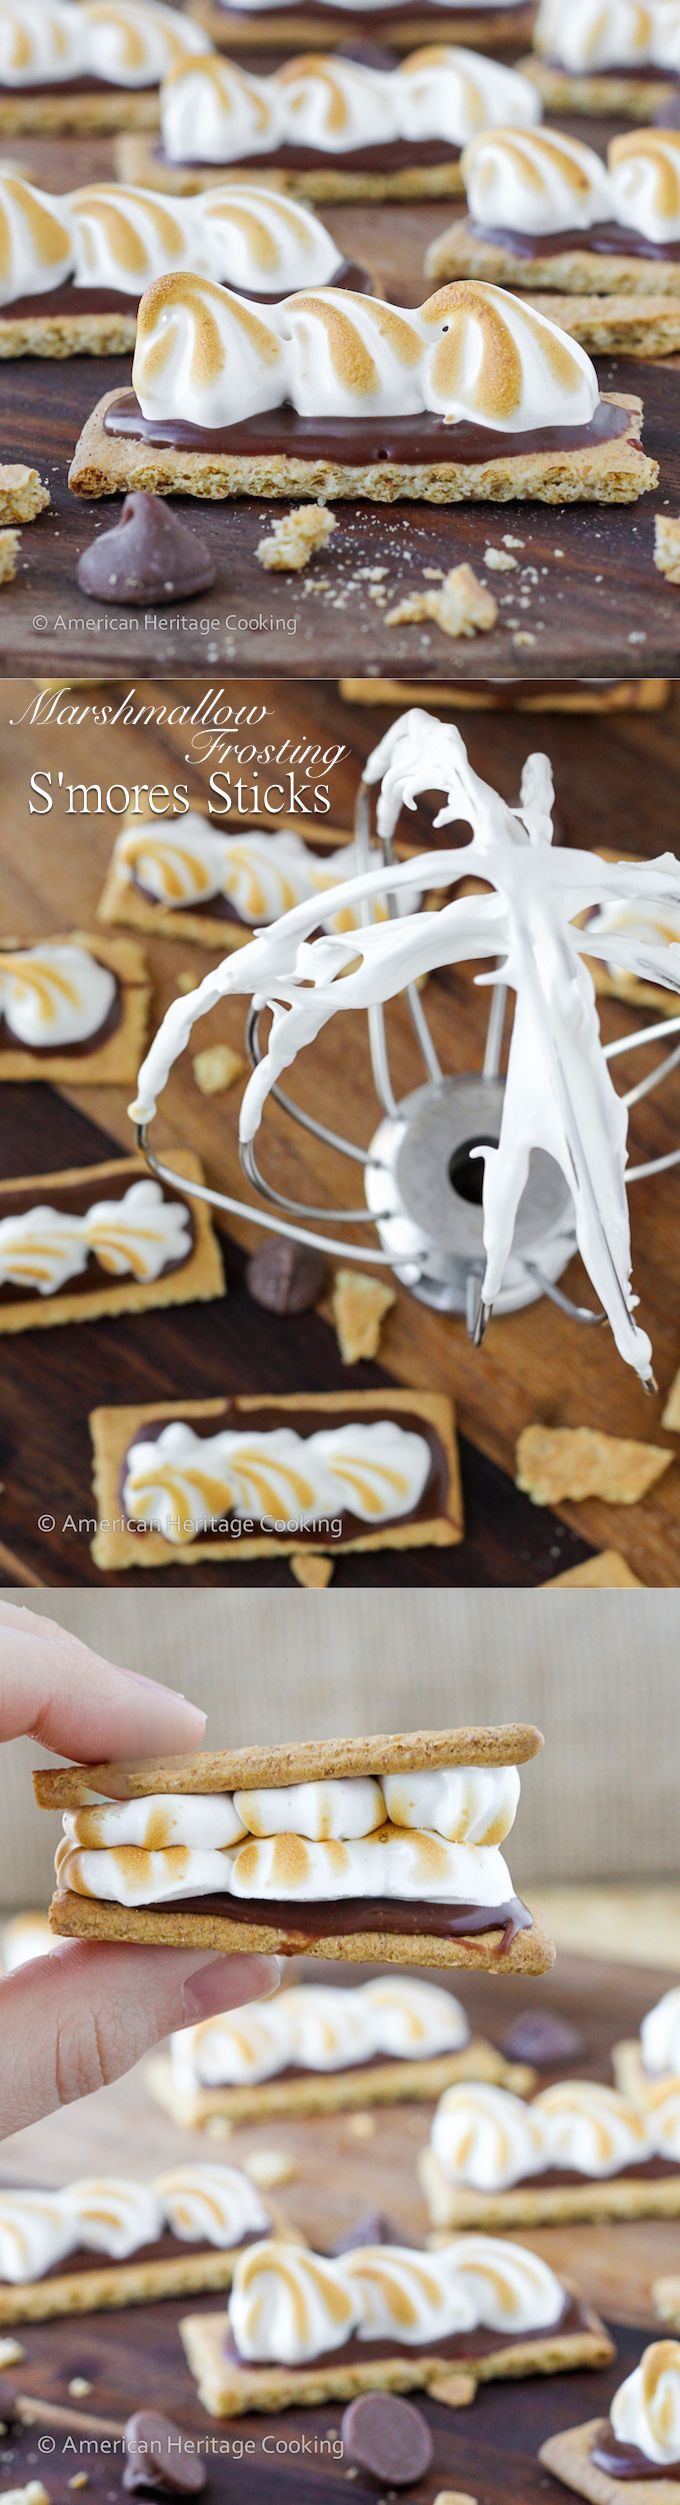 Homemade Marshmallow Frosting Smores Sticks | An easy, gelatin-free, recipe for marshmallow frosting and adorable, bite-sized S'mores snacks!